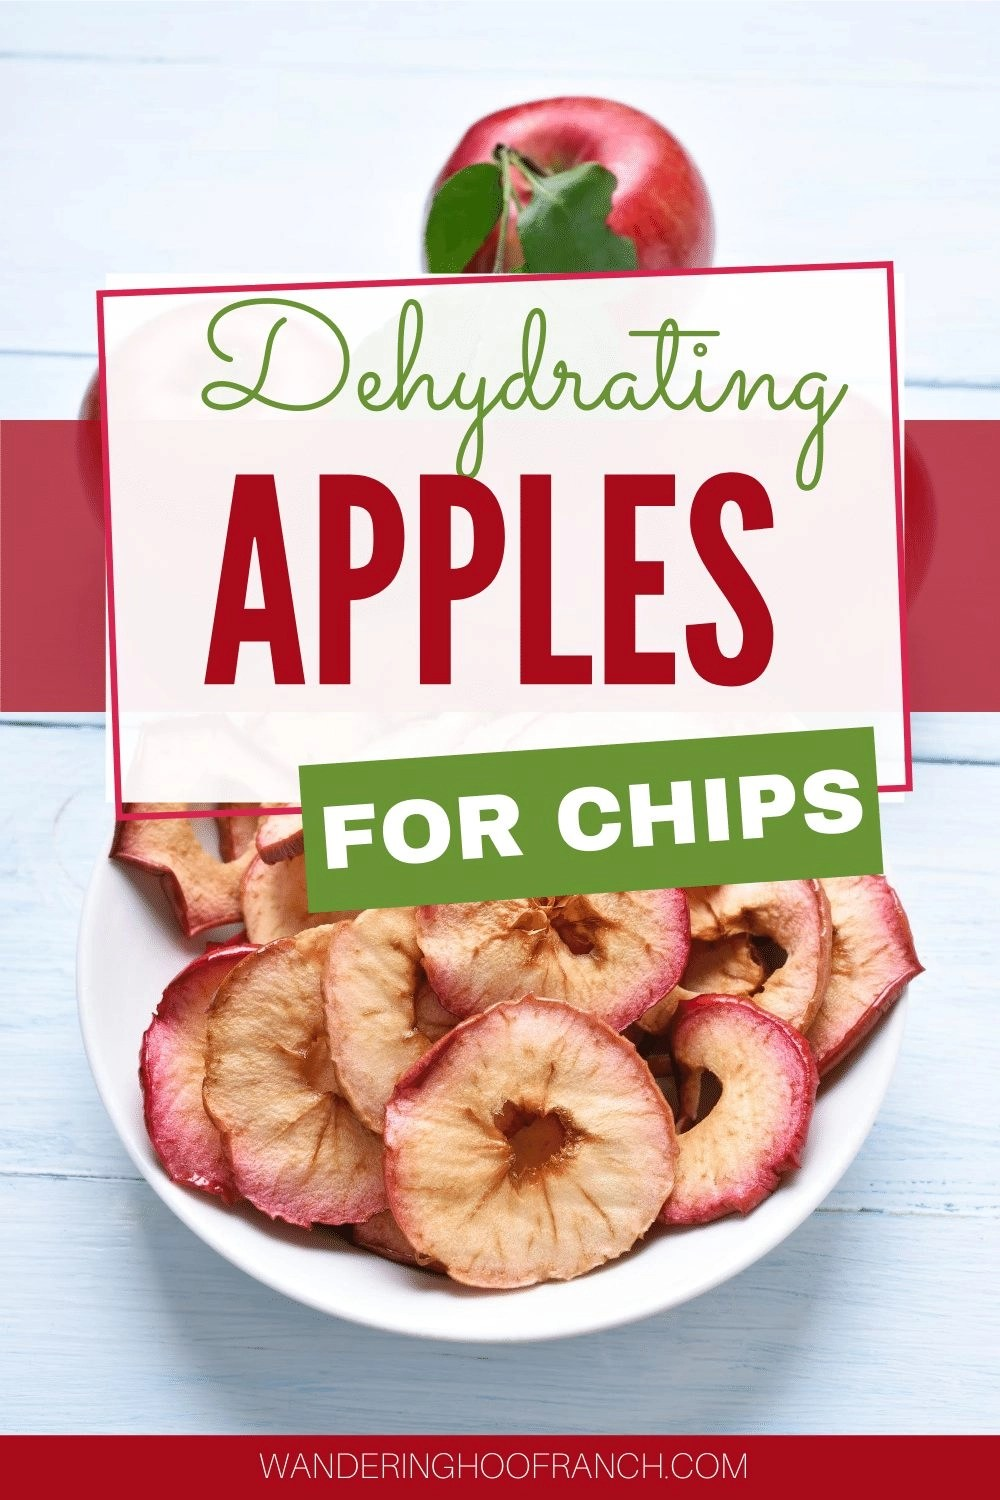 dehydrated apples on a plate